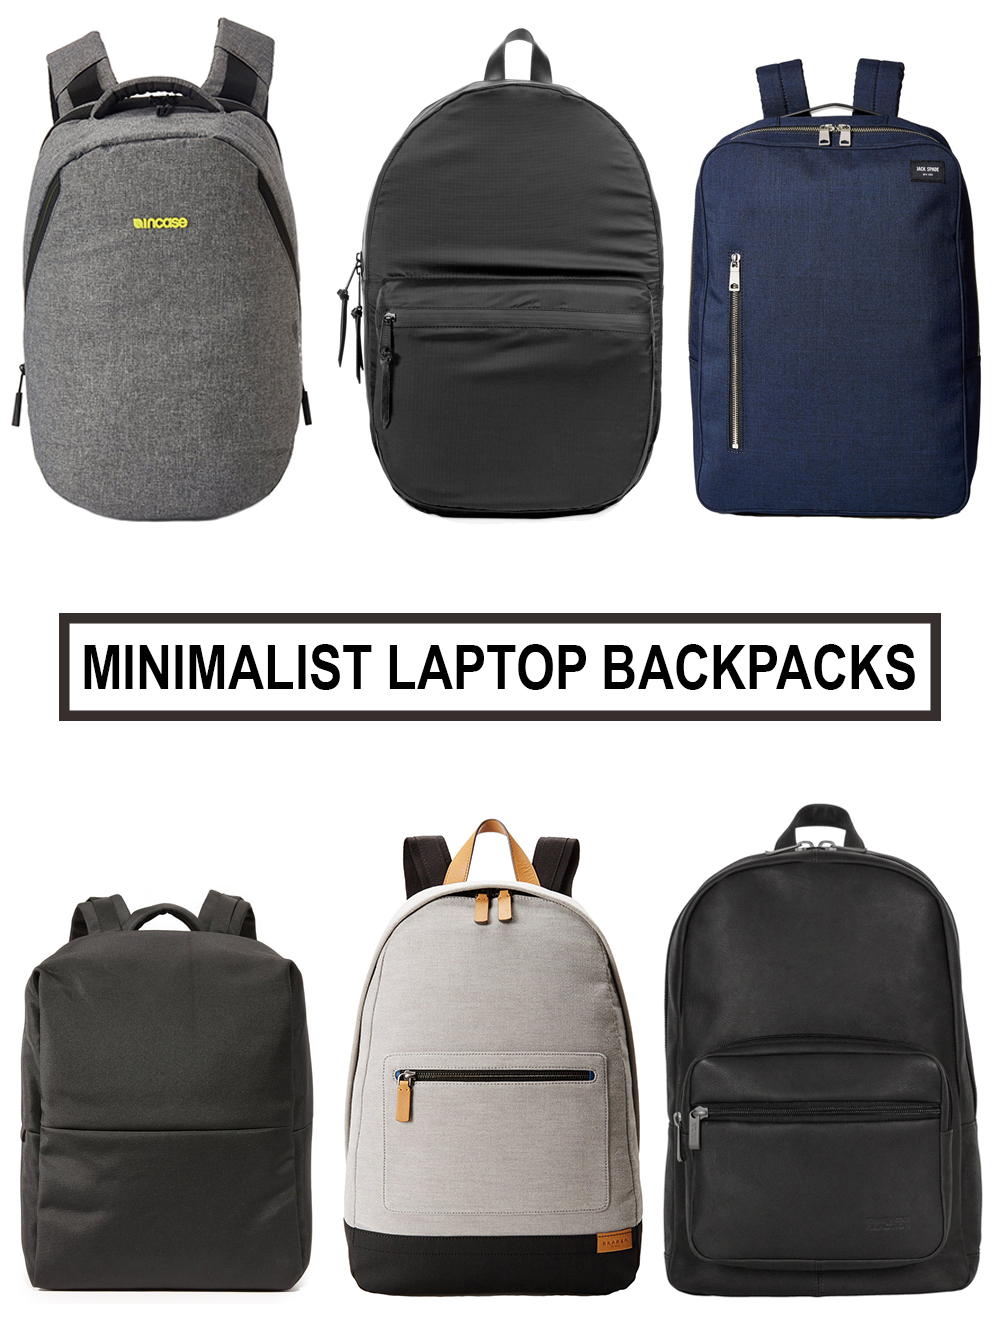 minimalist backpack buying guide   modern laptop backpacks for  - minimalist backpack buying guide   modern laptop backpacks for men